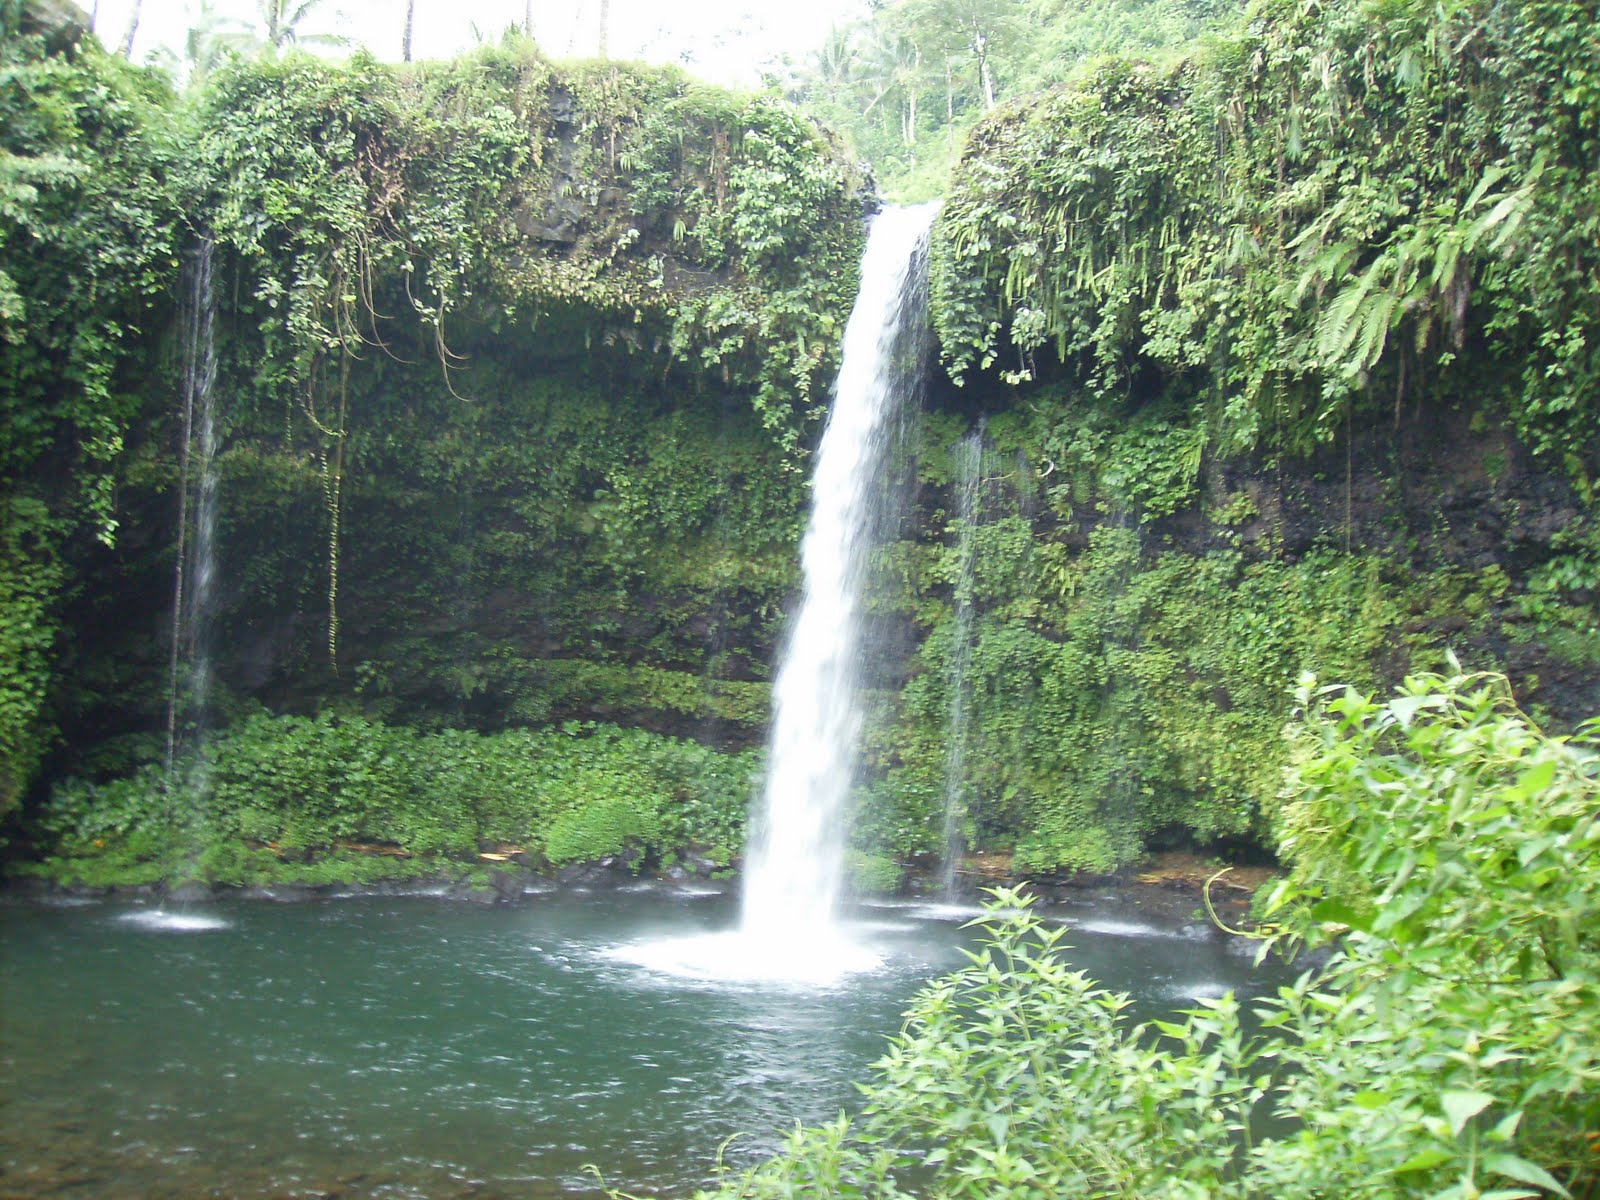 Baturaden Waterfall, Banyumas - Central Java